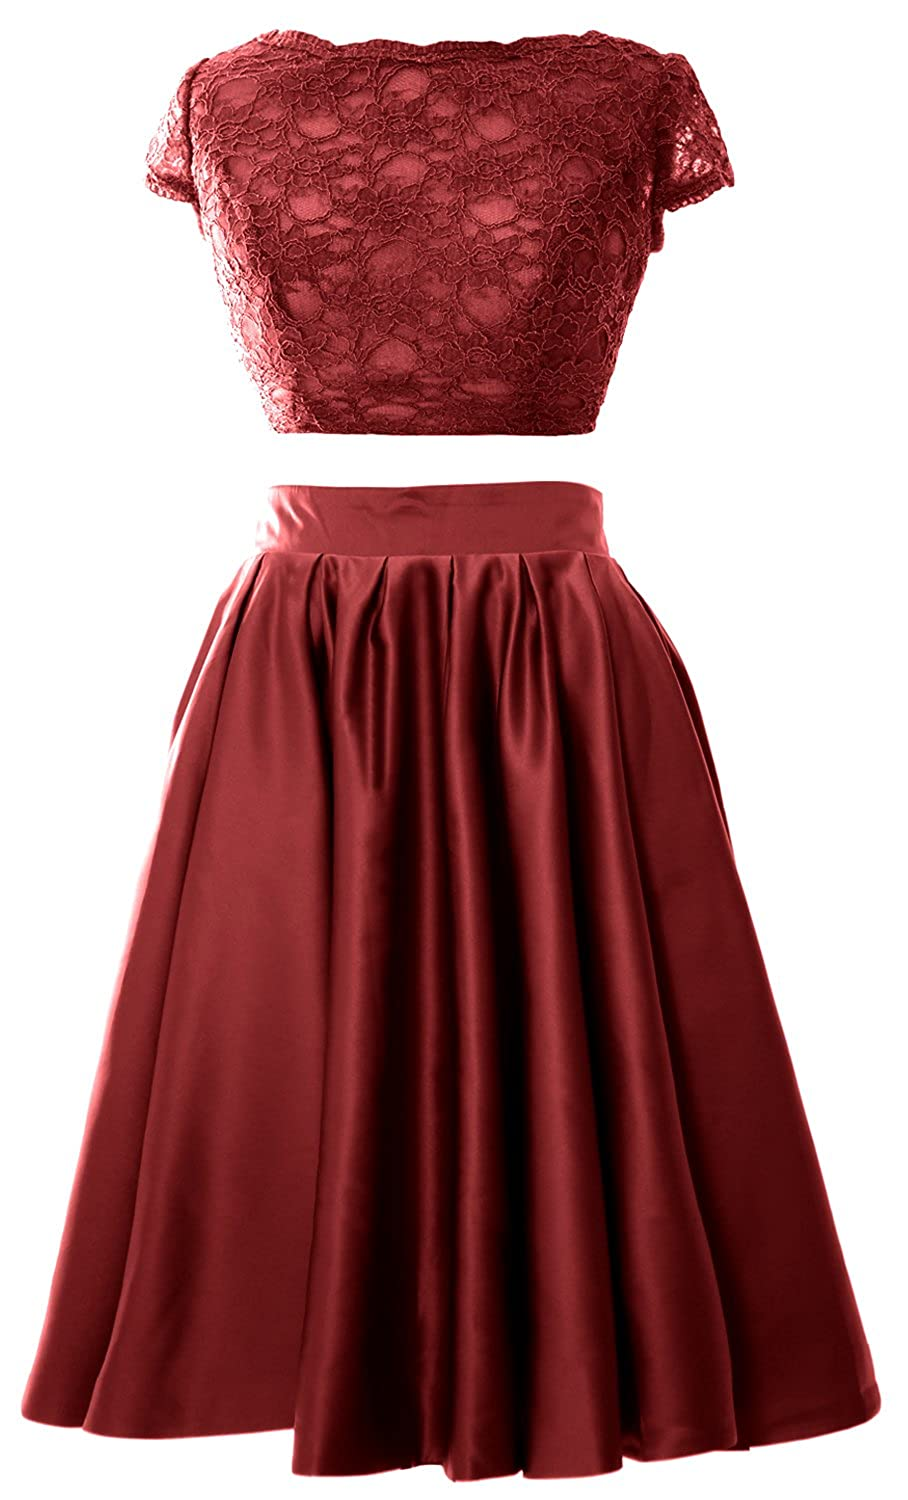 MACloth Women 2 Piece Cocktail Dress Cap Sleeves Short Lace Prom Formal Gown